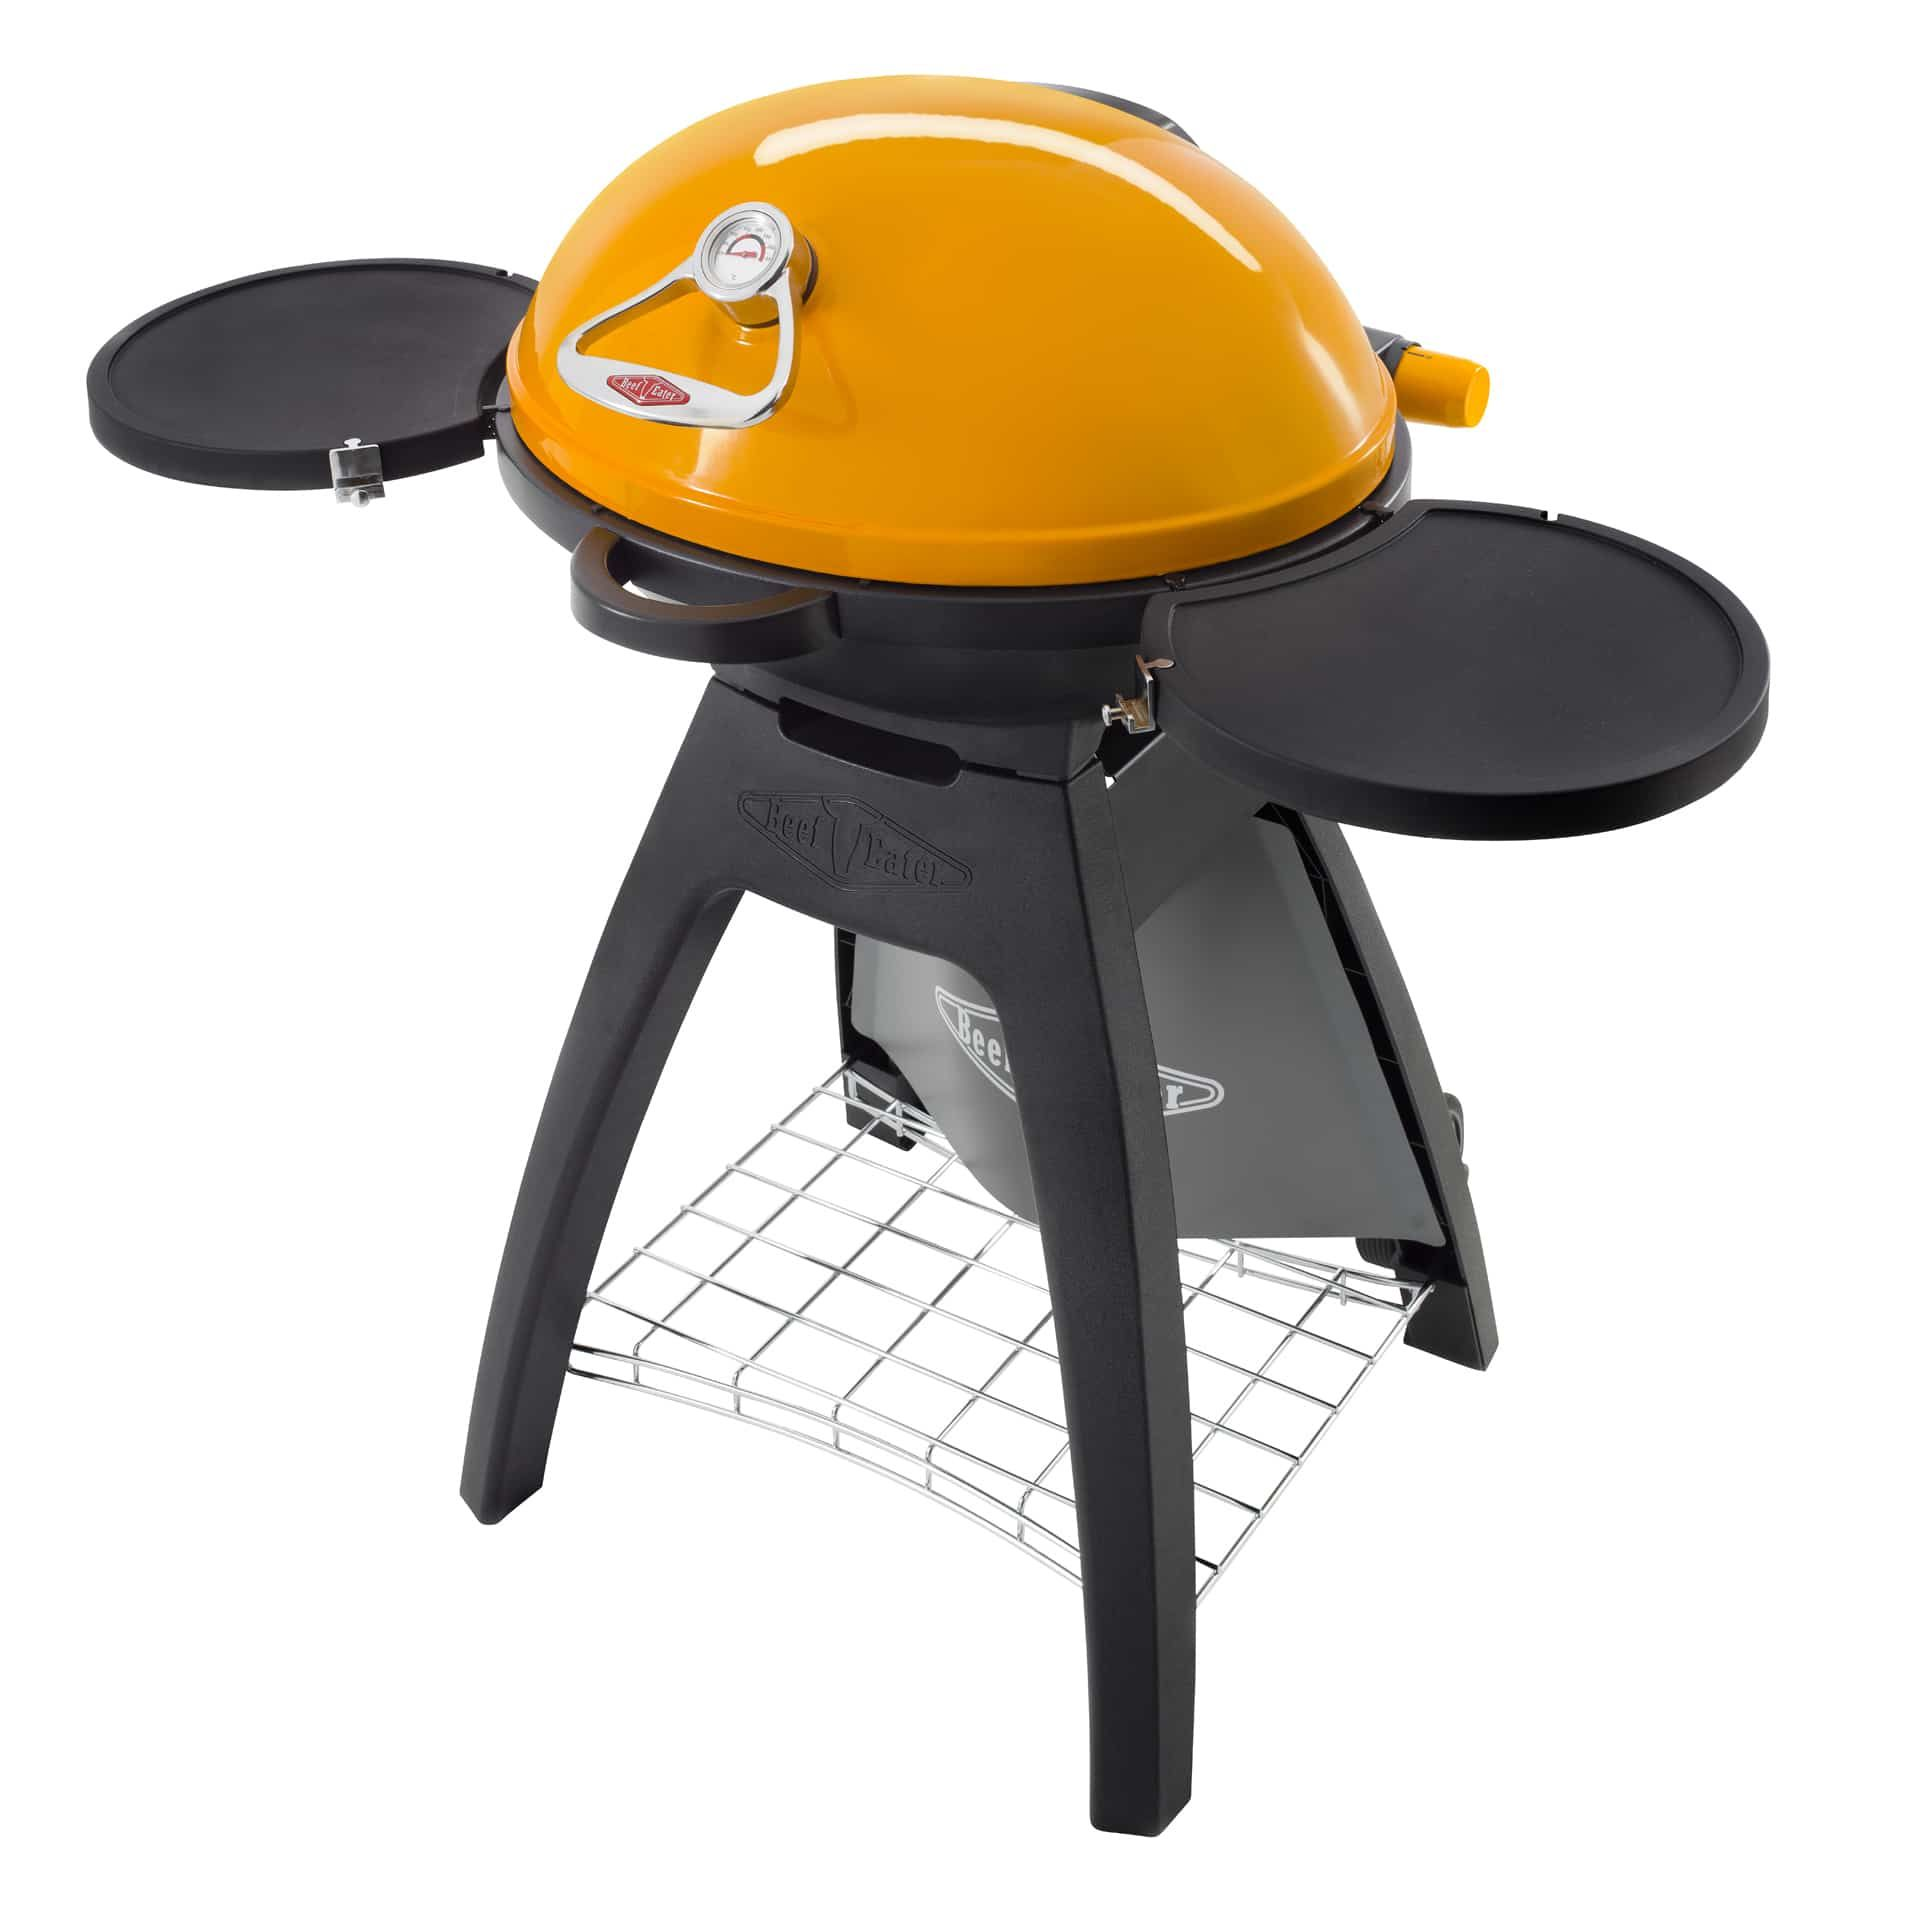 Beefeater Bugg Gas Bbq Grill Stand Portable Gas Bbq Gas Bbq Beefeater Bbq